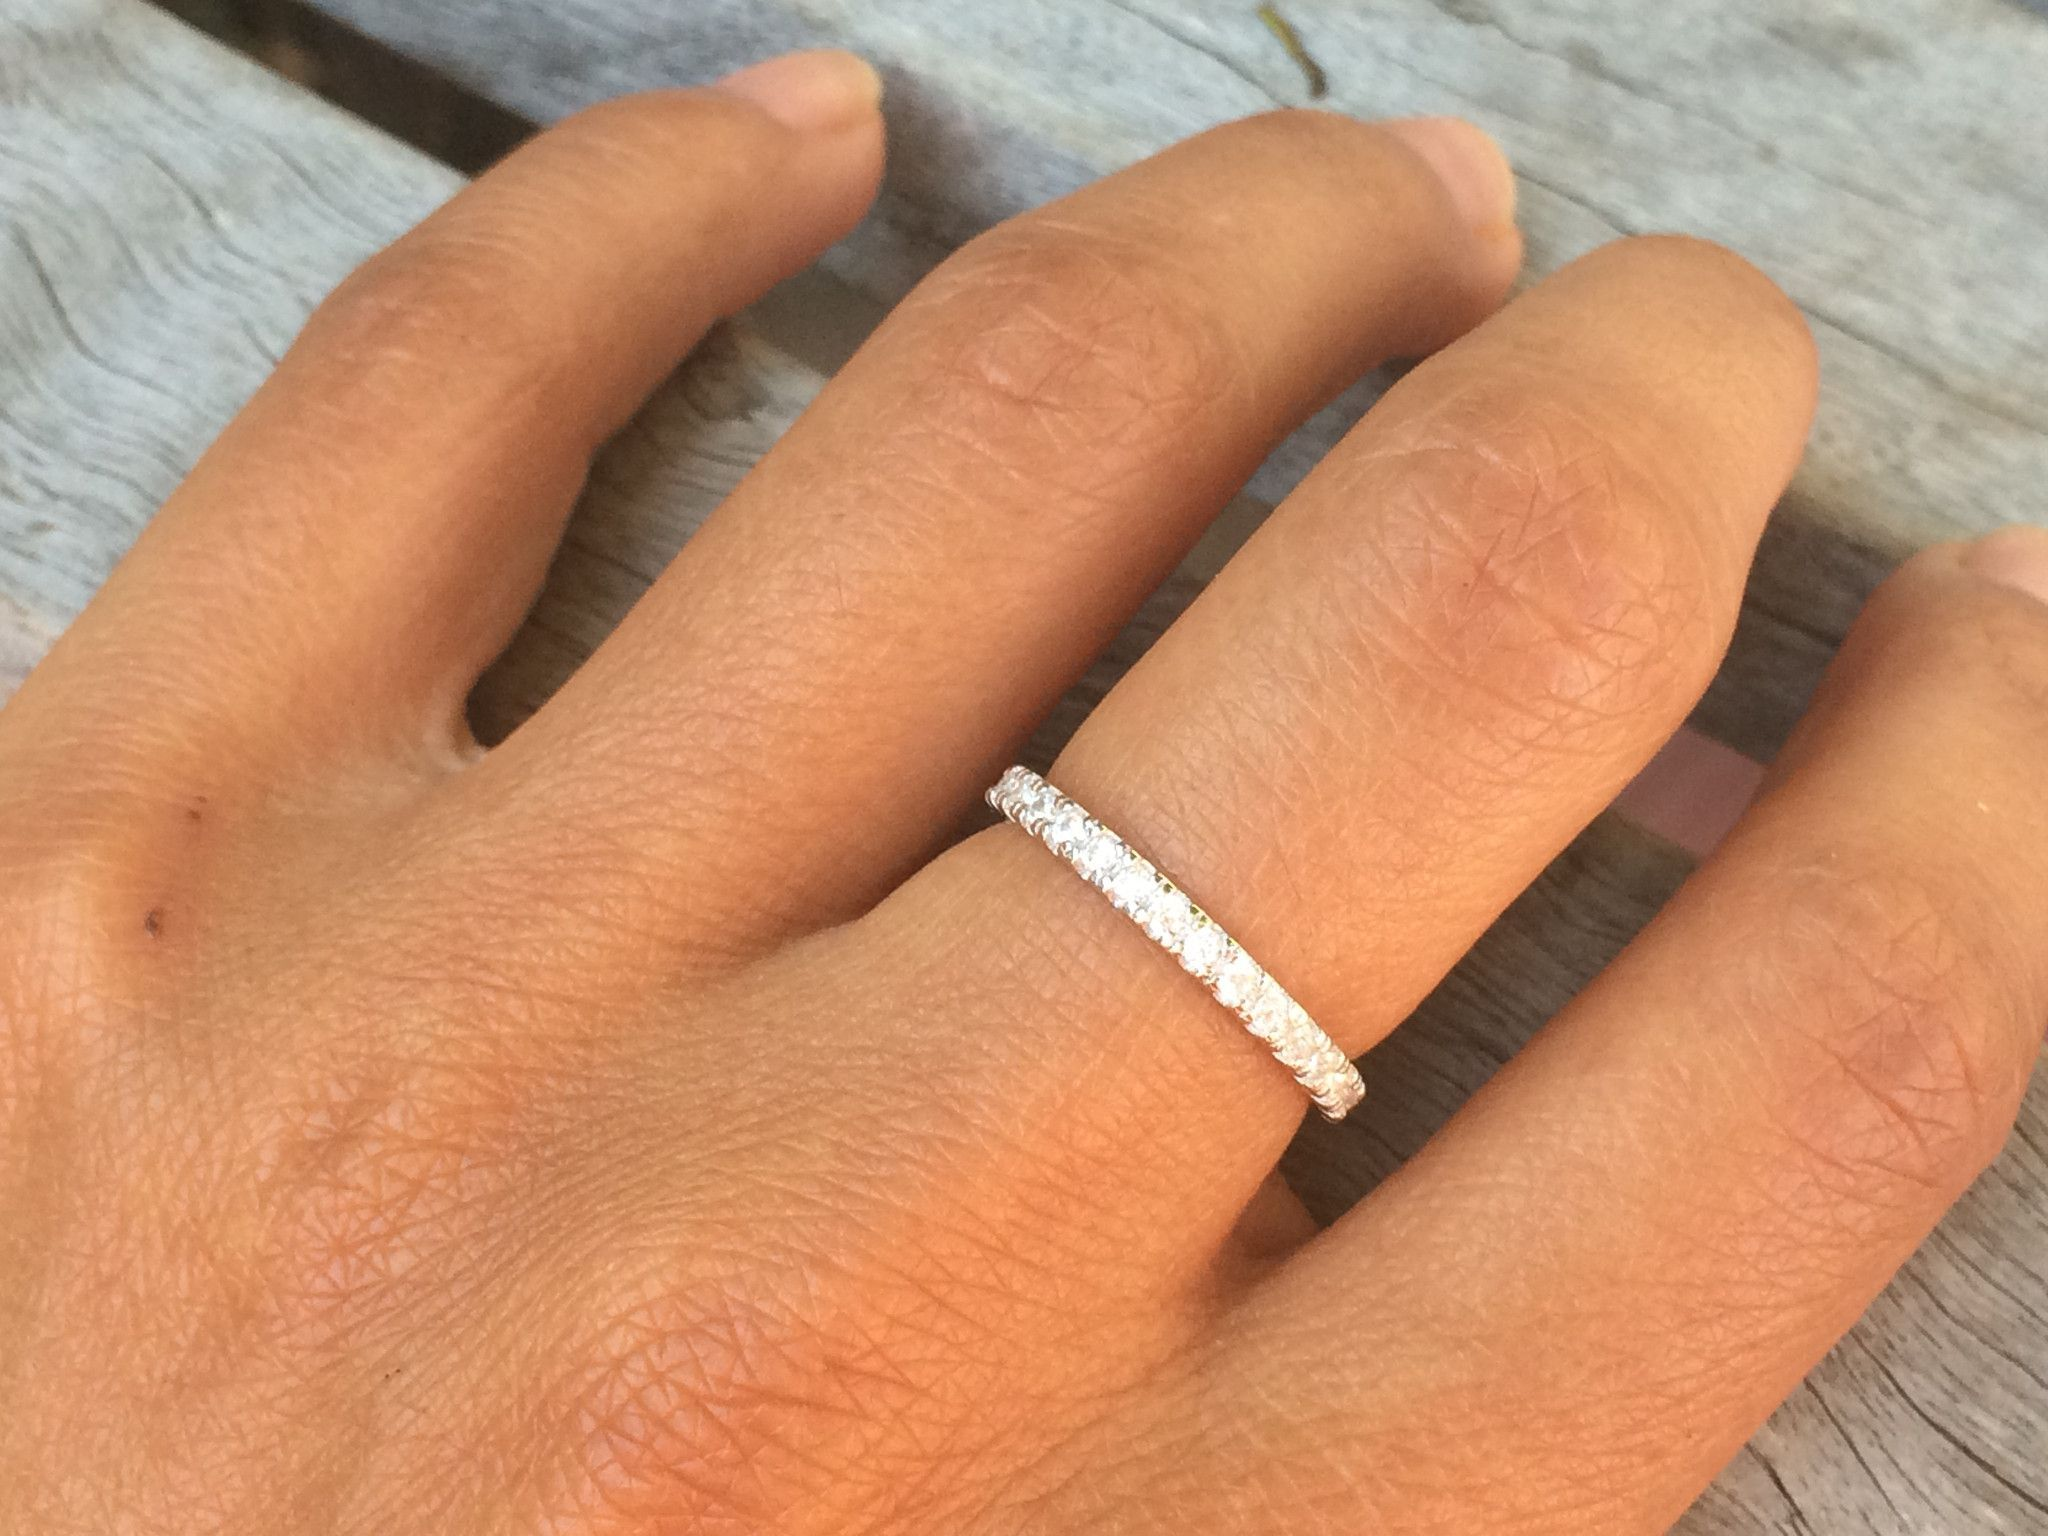 Beautiful Micro Pave Set Eternity Wedding Band Ring Will Not Cause Green Finger Reaction Jewelry Is Stamped 925 Condition New Metal Stamp